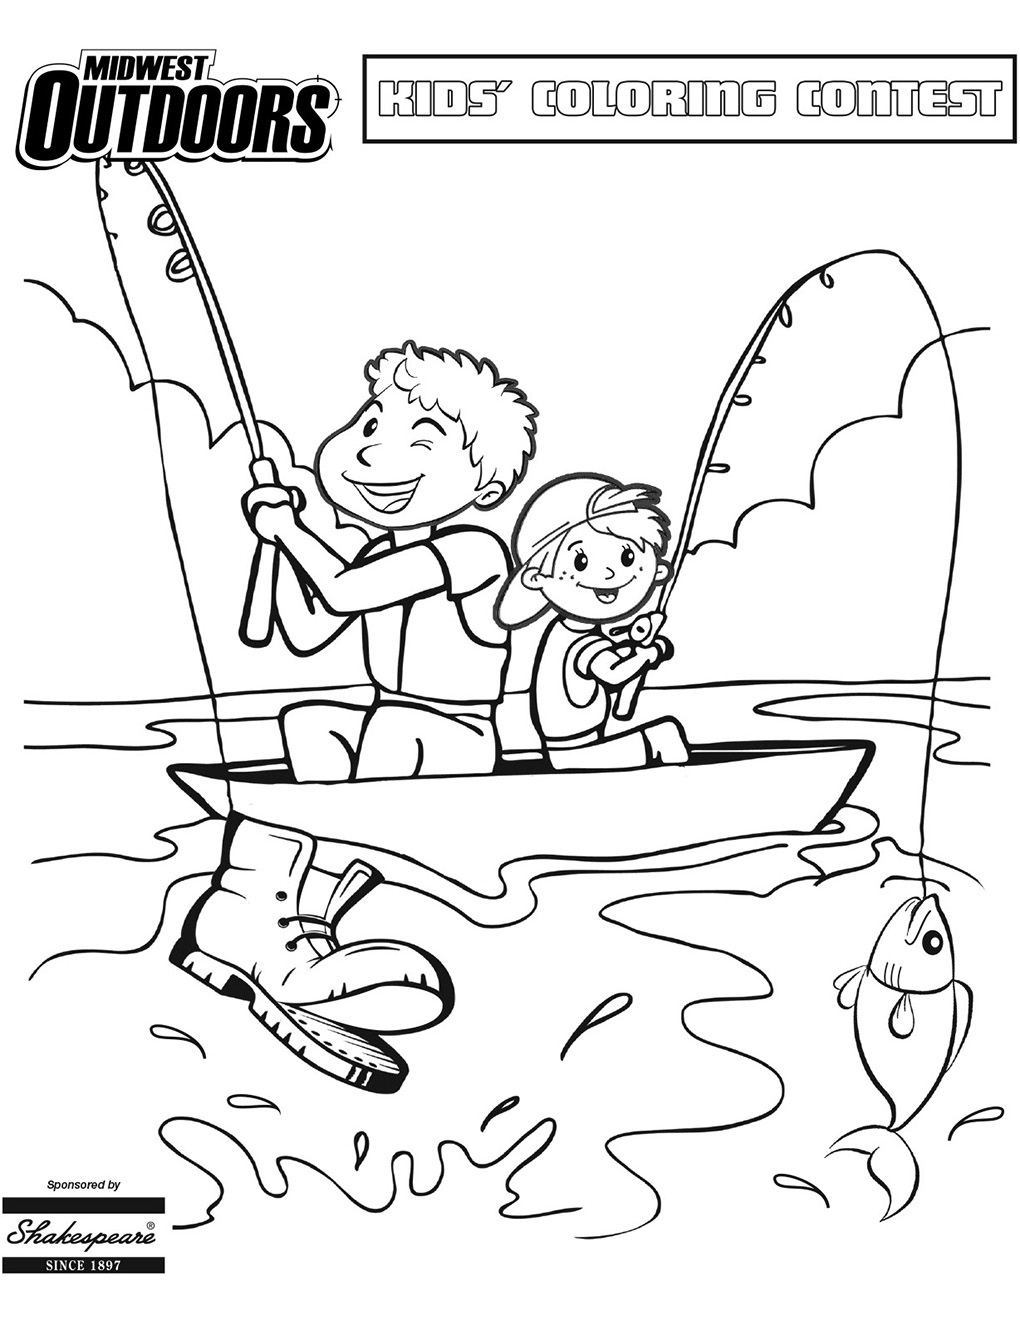 Coloring Contest - MidWest Outdoors